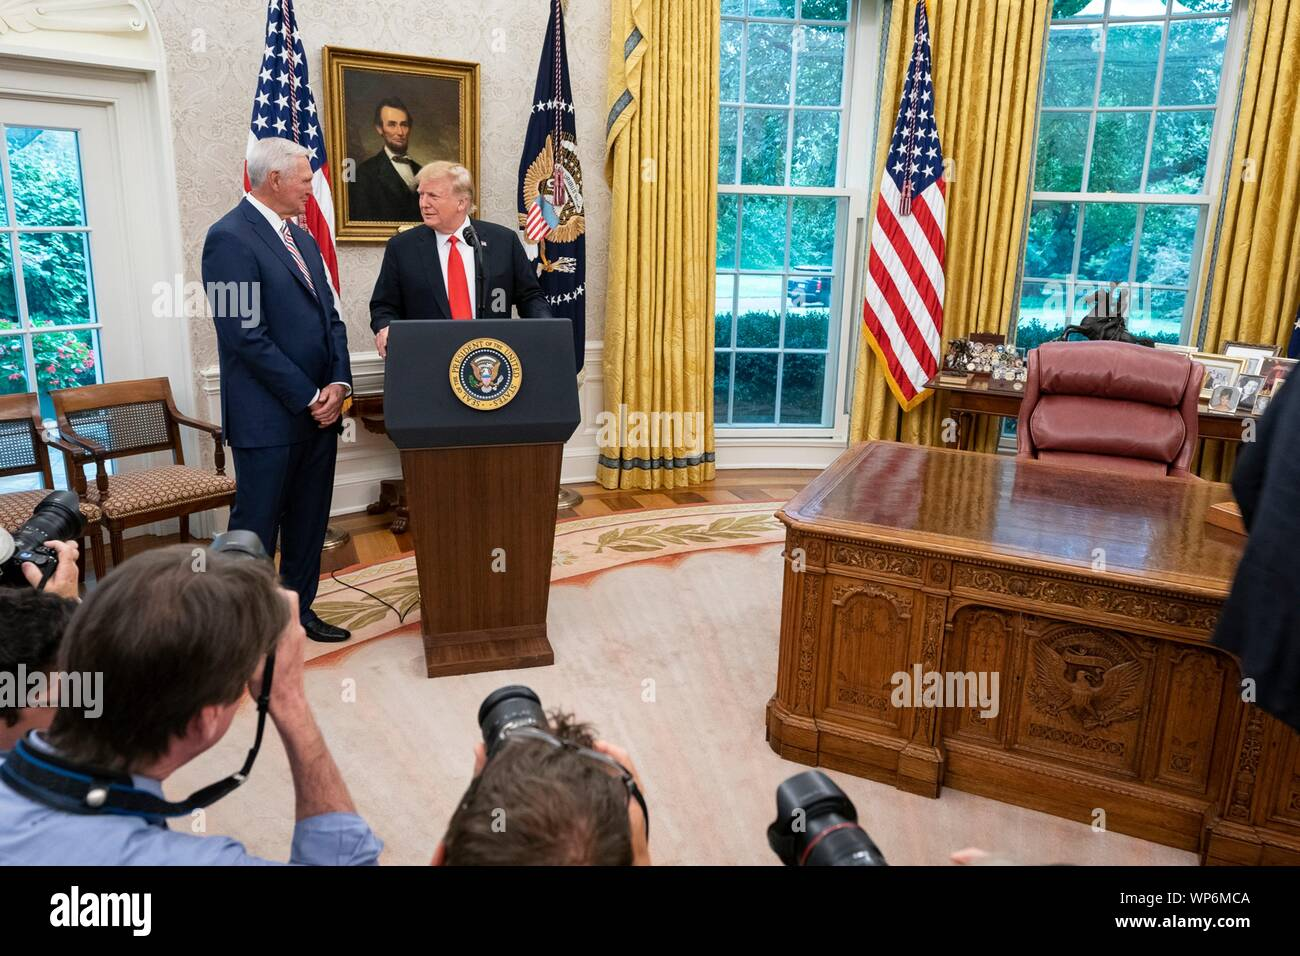 Washington, DC, USA. 05 September, 2019. U.S President Donald Trump delivers remarks prior to awarding the Presidential Medal of Freedom, to Hall of Fame Los Angeles Lakers basketball star and legendary NBA General Manager Jerry West during a ceremony in the Oval Office of the White House September 5, 2019 in Washington, DC. Stock Photo